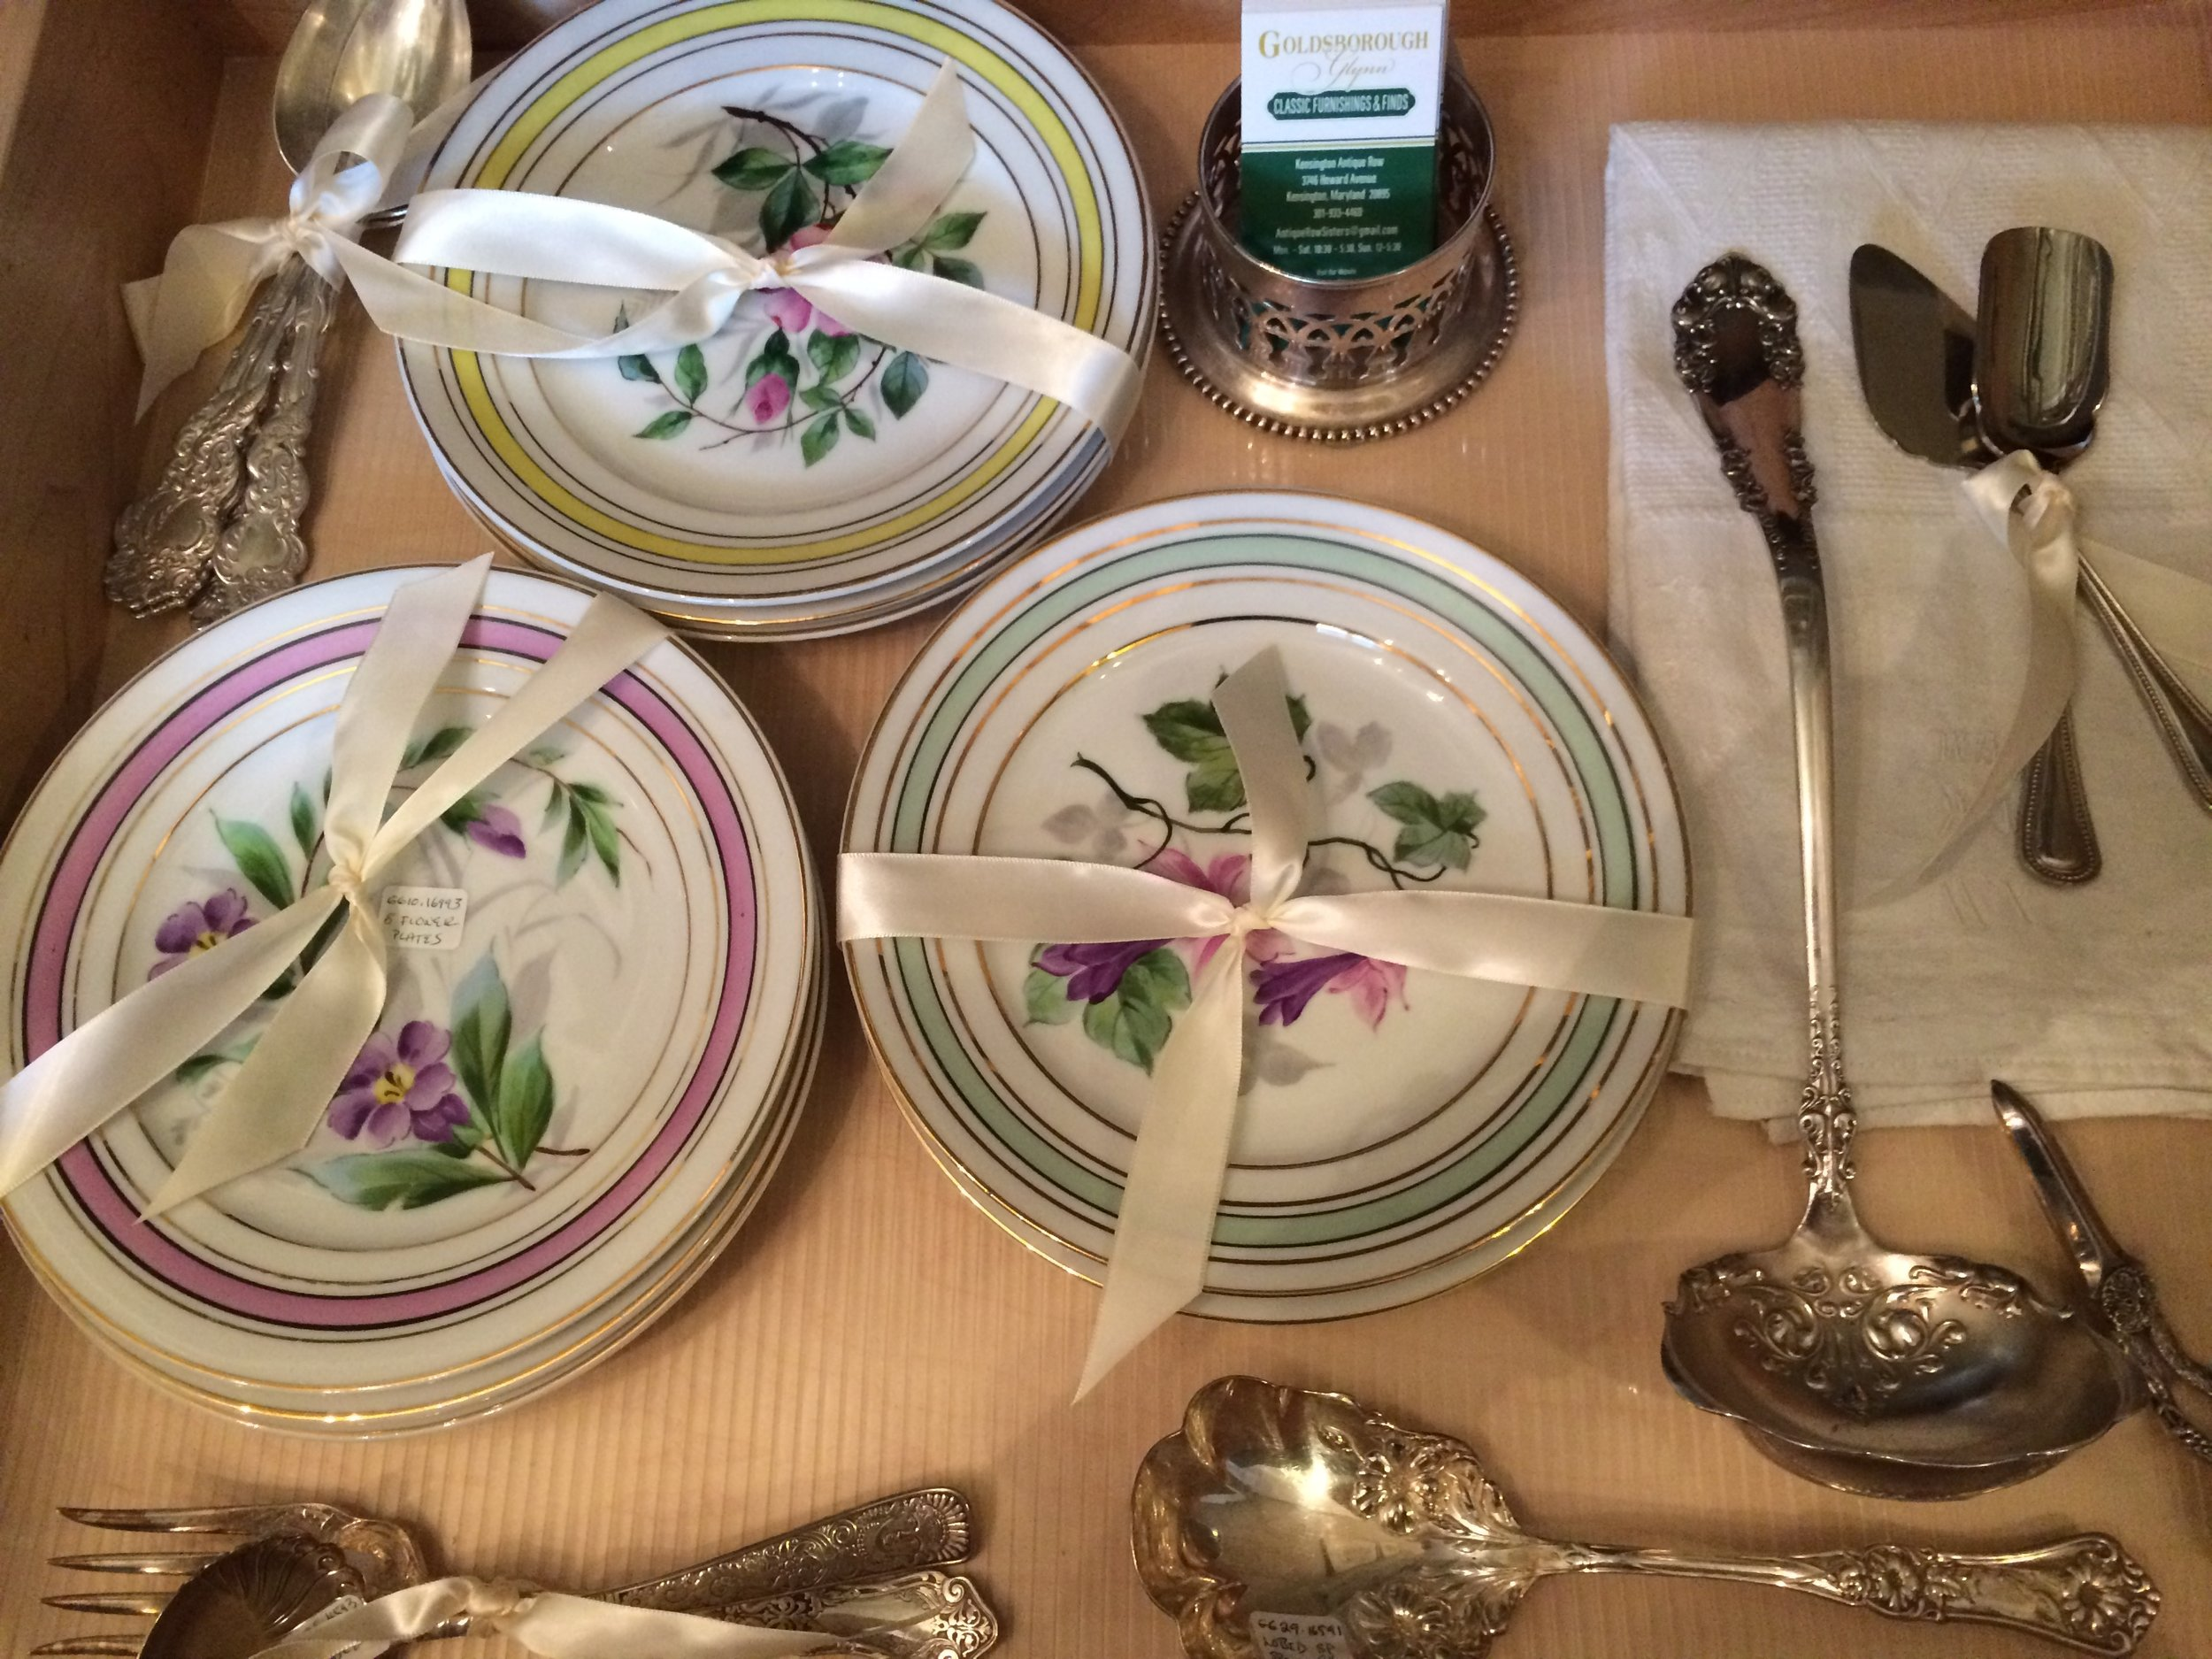 A drawer full of interesting fruit or dessert plates and assorted silver serving ware.